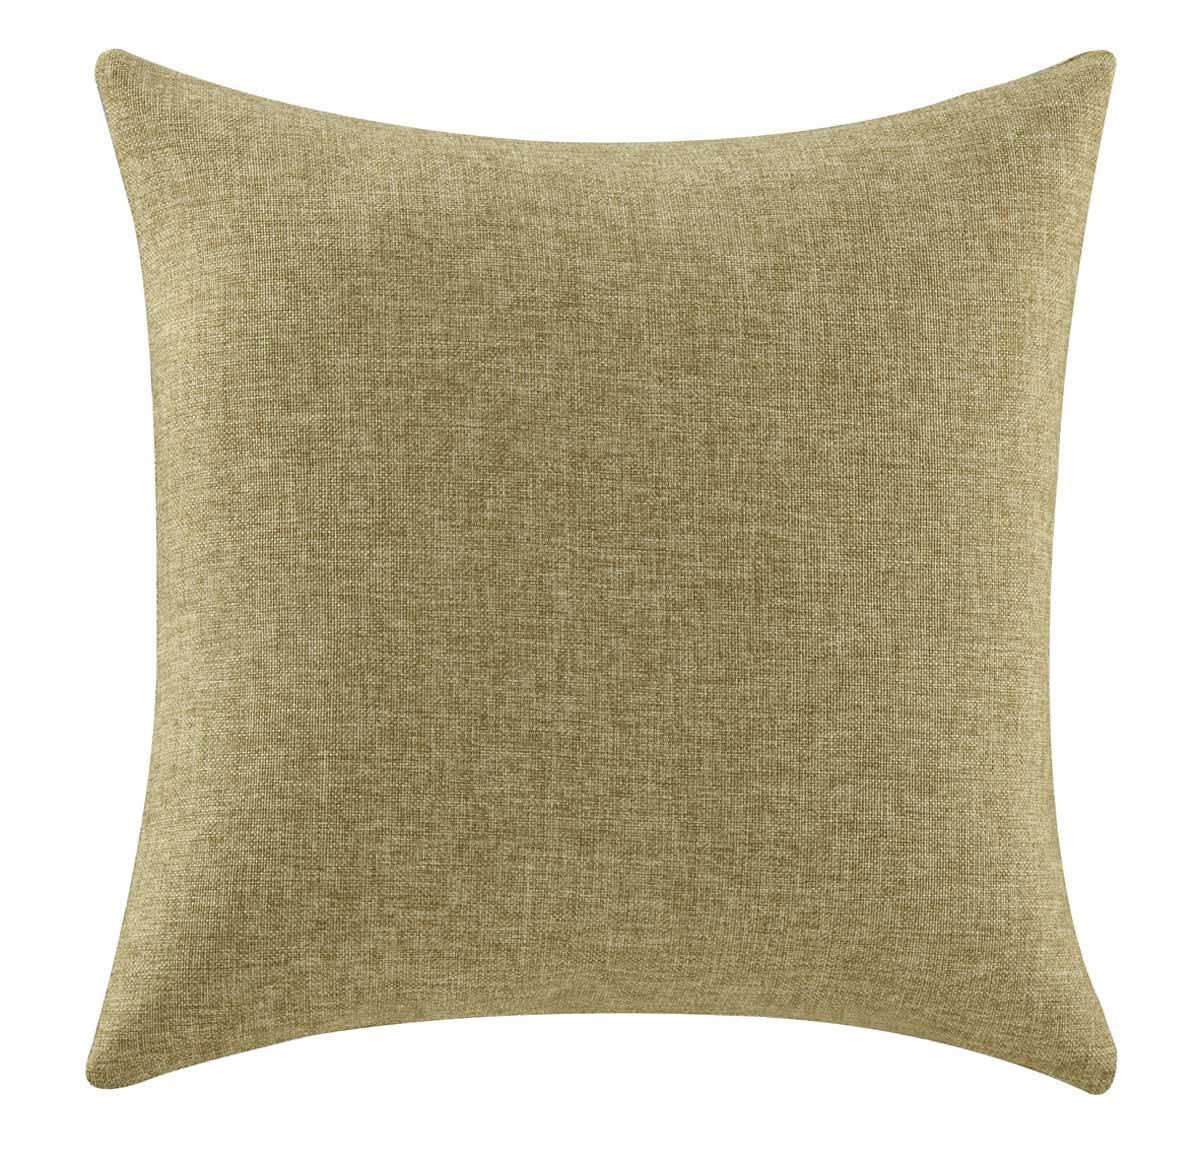 905342 Solid Mustard Pillow